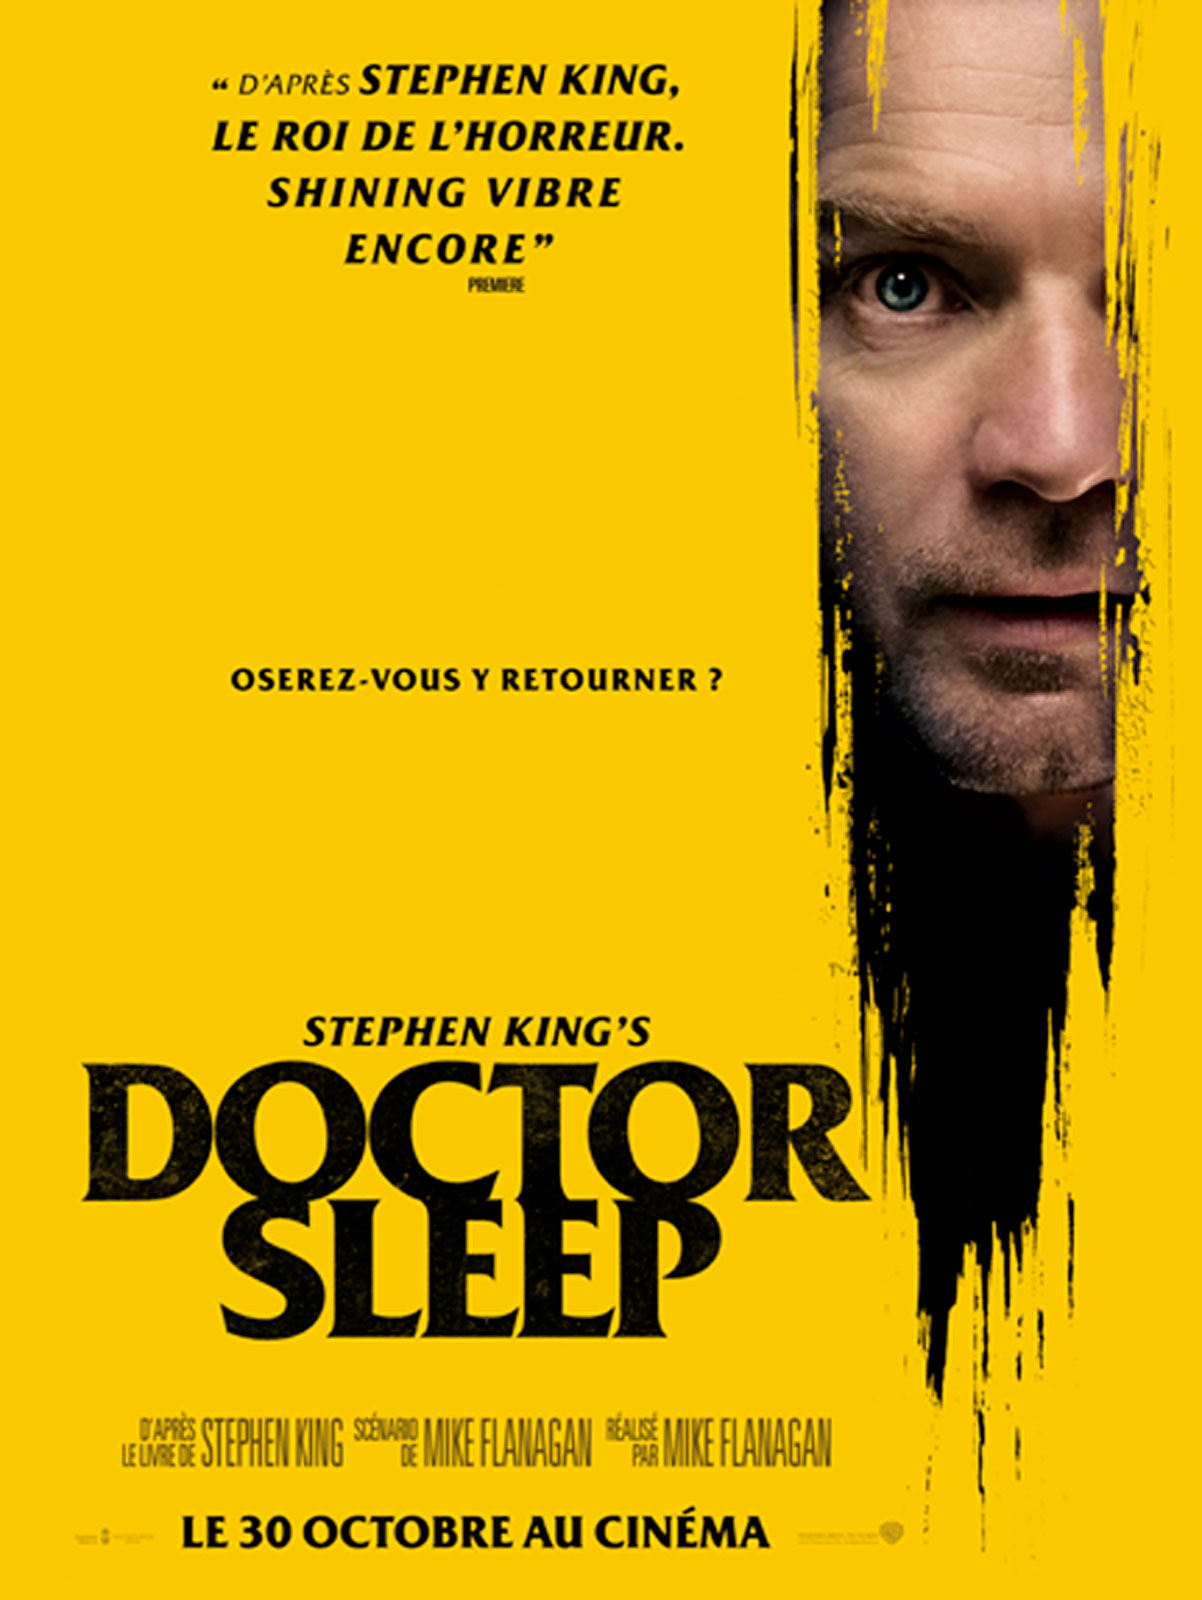 Achat Stephen King's Doctor Sleep en DVD - AlloCiné